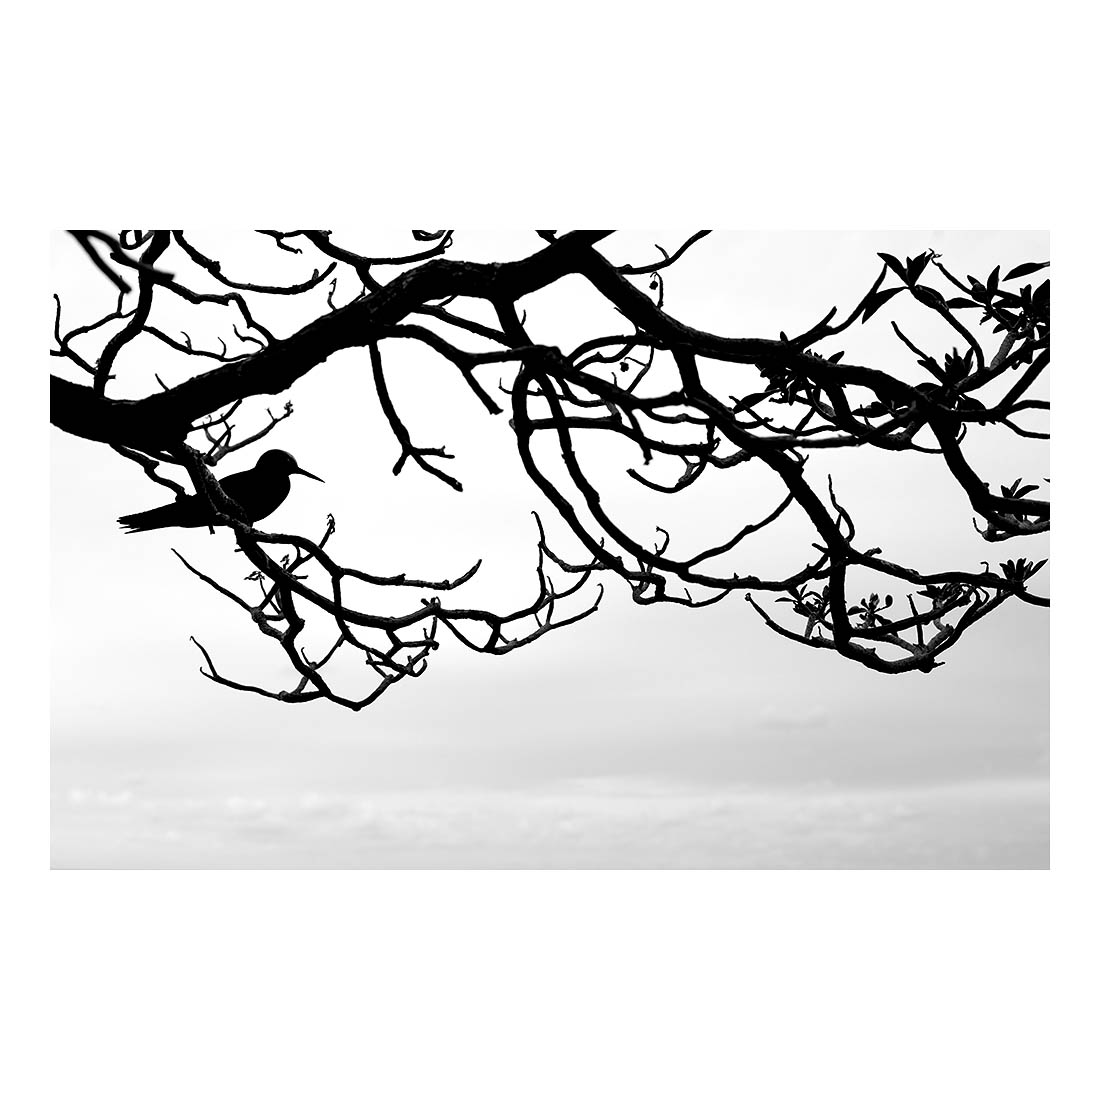 Noddies on Heron #03   (2016) 65cm x 100cm Archival pigment print on bamboo Edition of 10 + 2AP